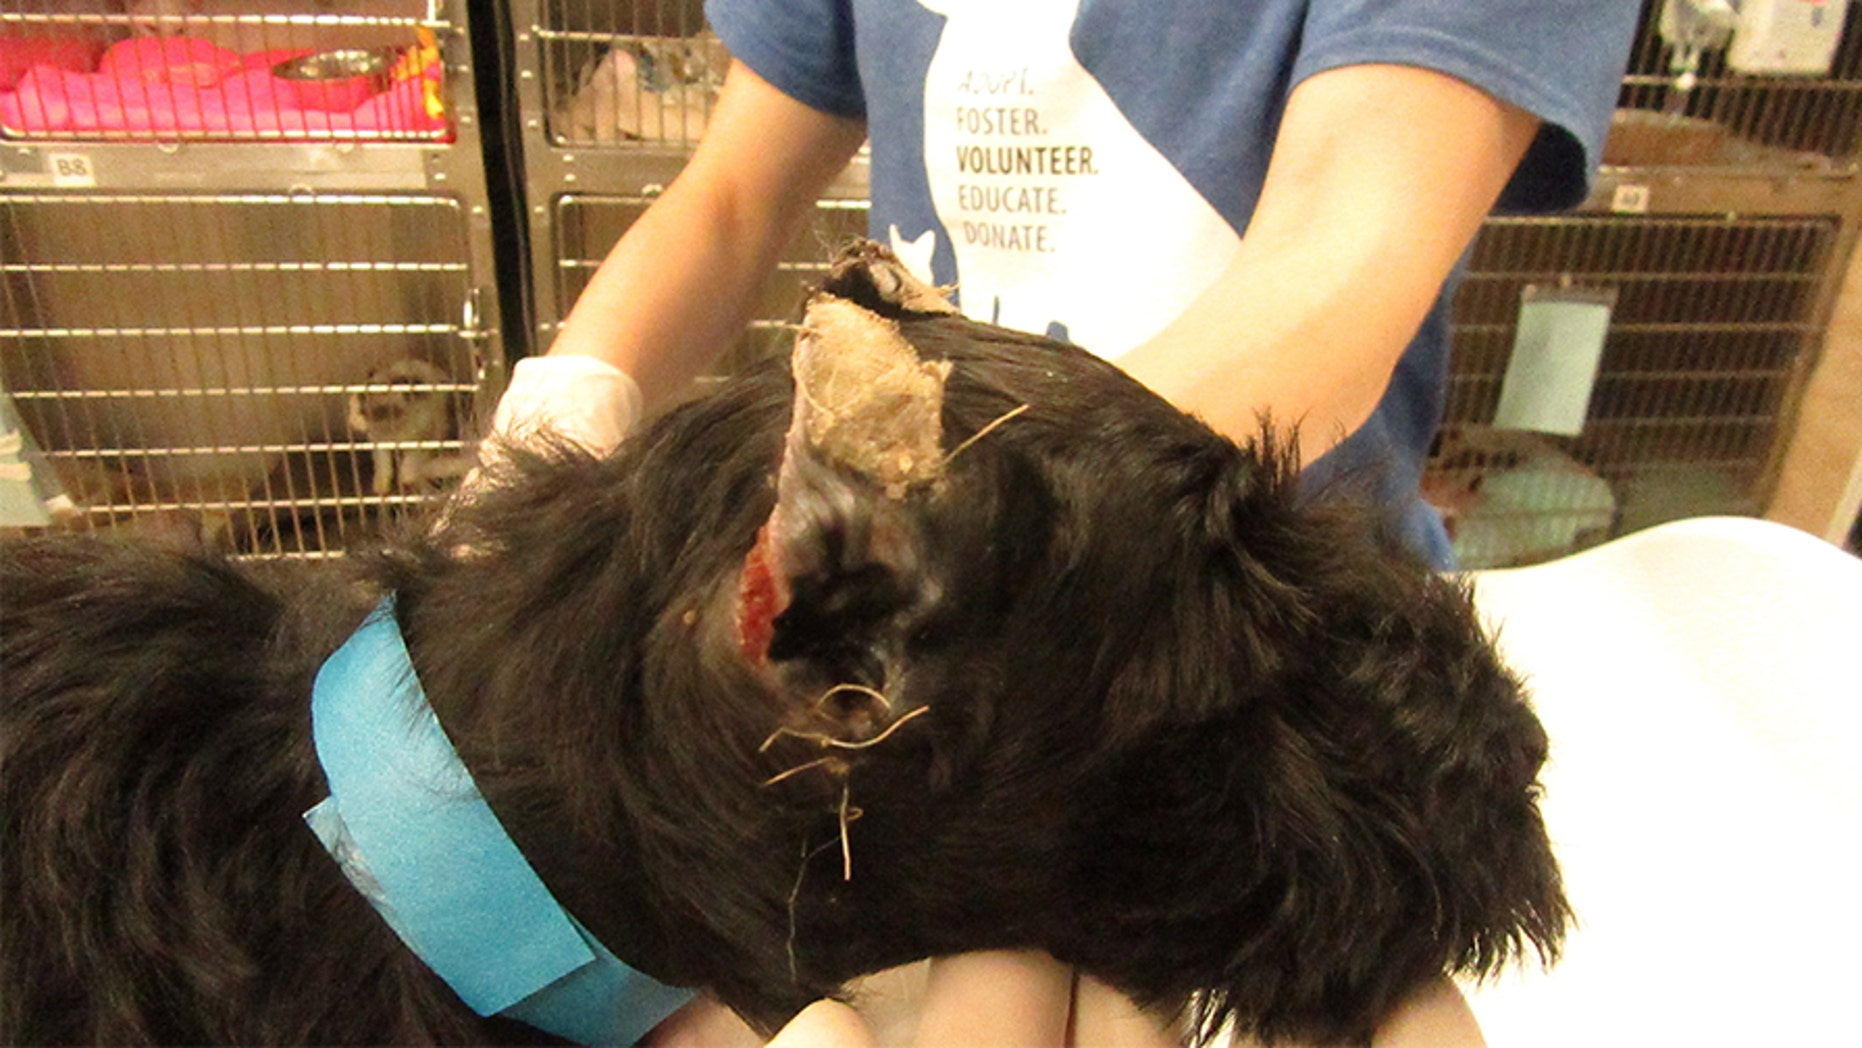 """The Pennsylvania SPCA on Thursday announced animal cruelty charges against a woman accused of """"cropping"""" several miniature schnauzer puppies' ears in what the organization described as a """"traumatic experience."""""""